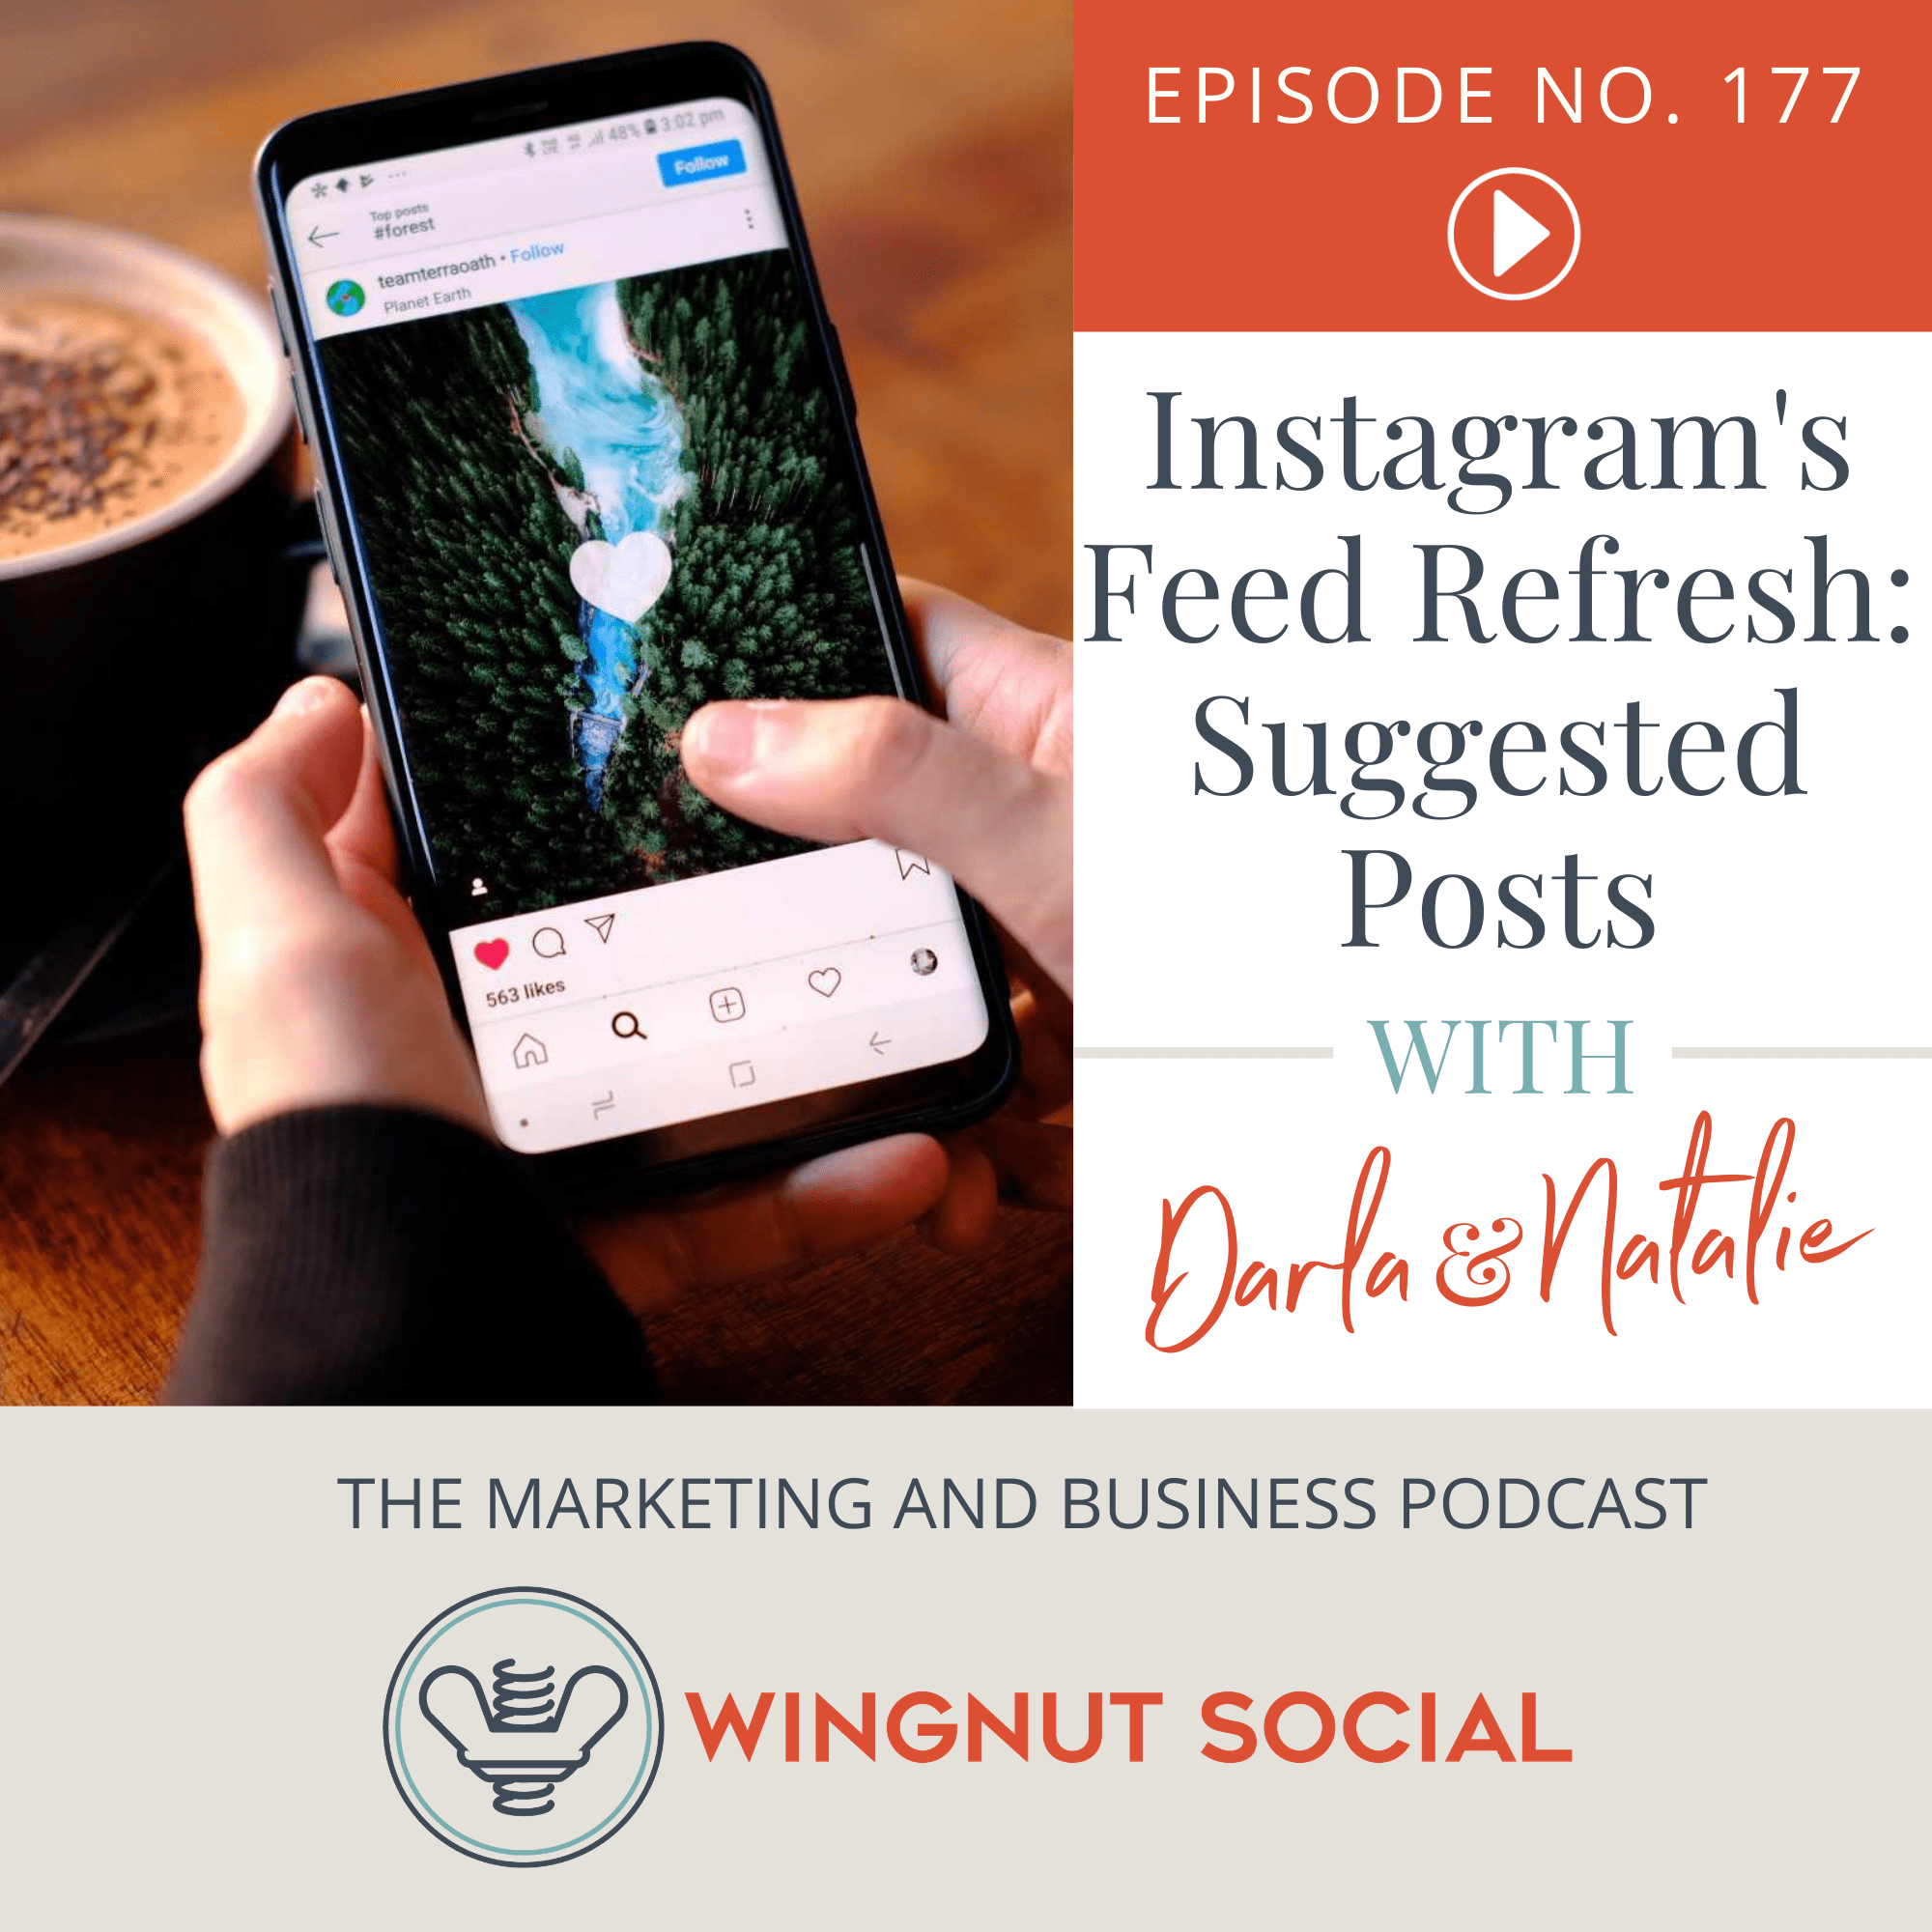 Instagram's Feed Refresh: Suggested Posts - Episode 177